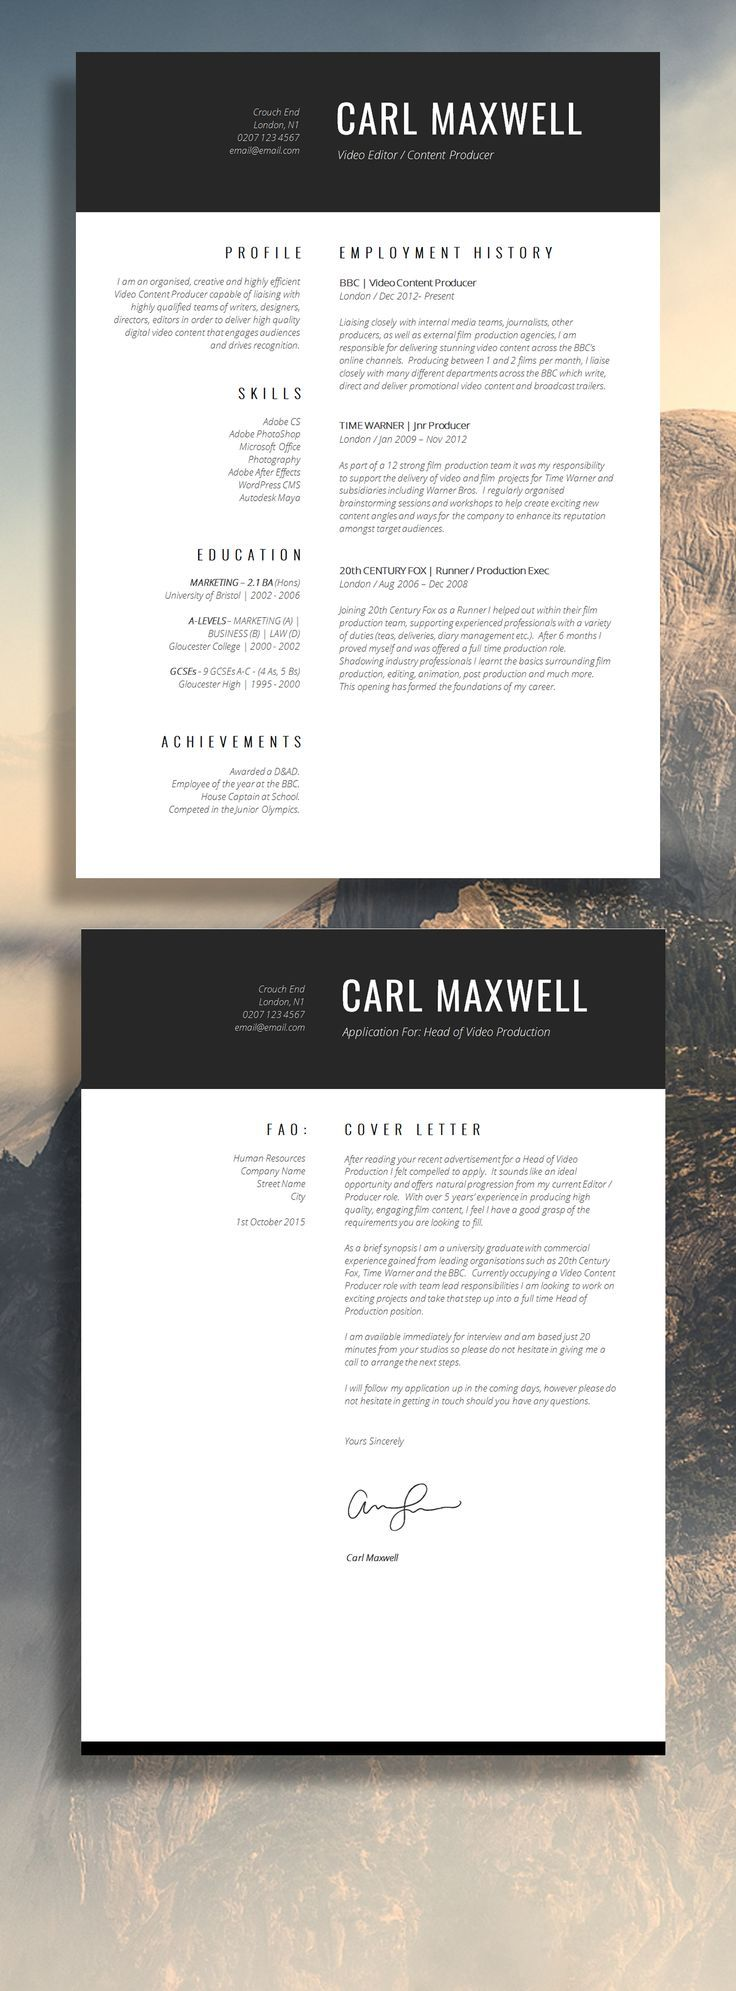 best ideas about format of resume resume writing don t underestimate the power of a professional resume template cv template